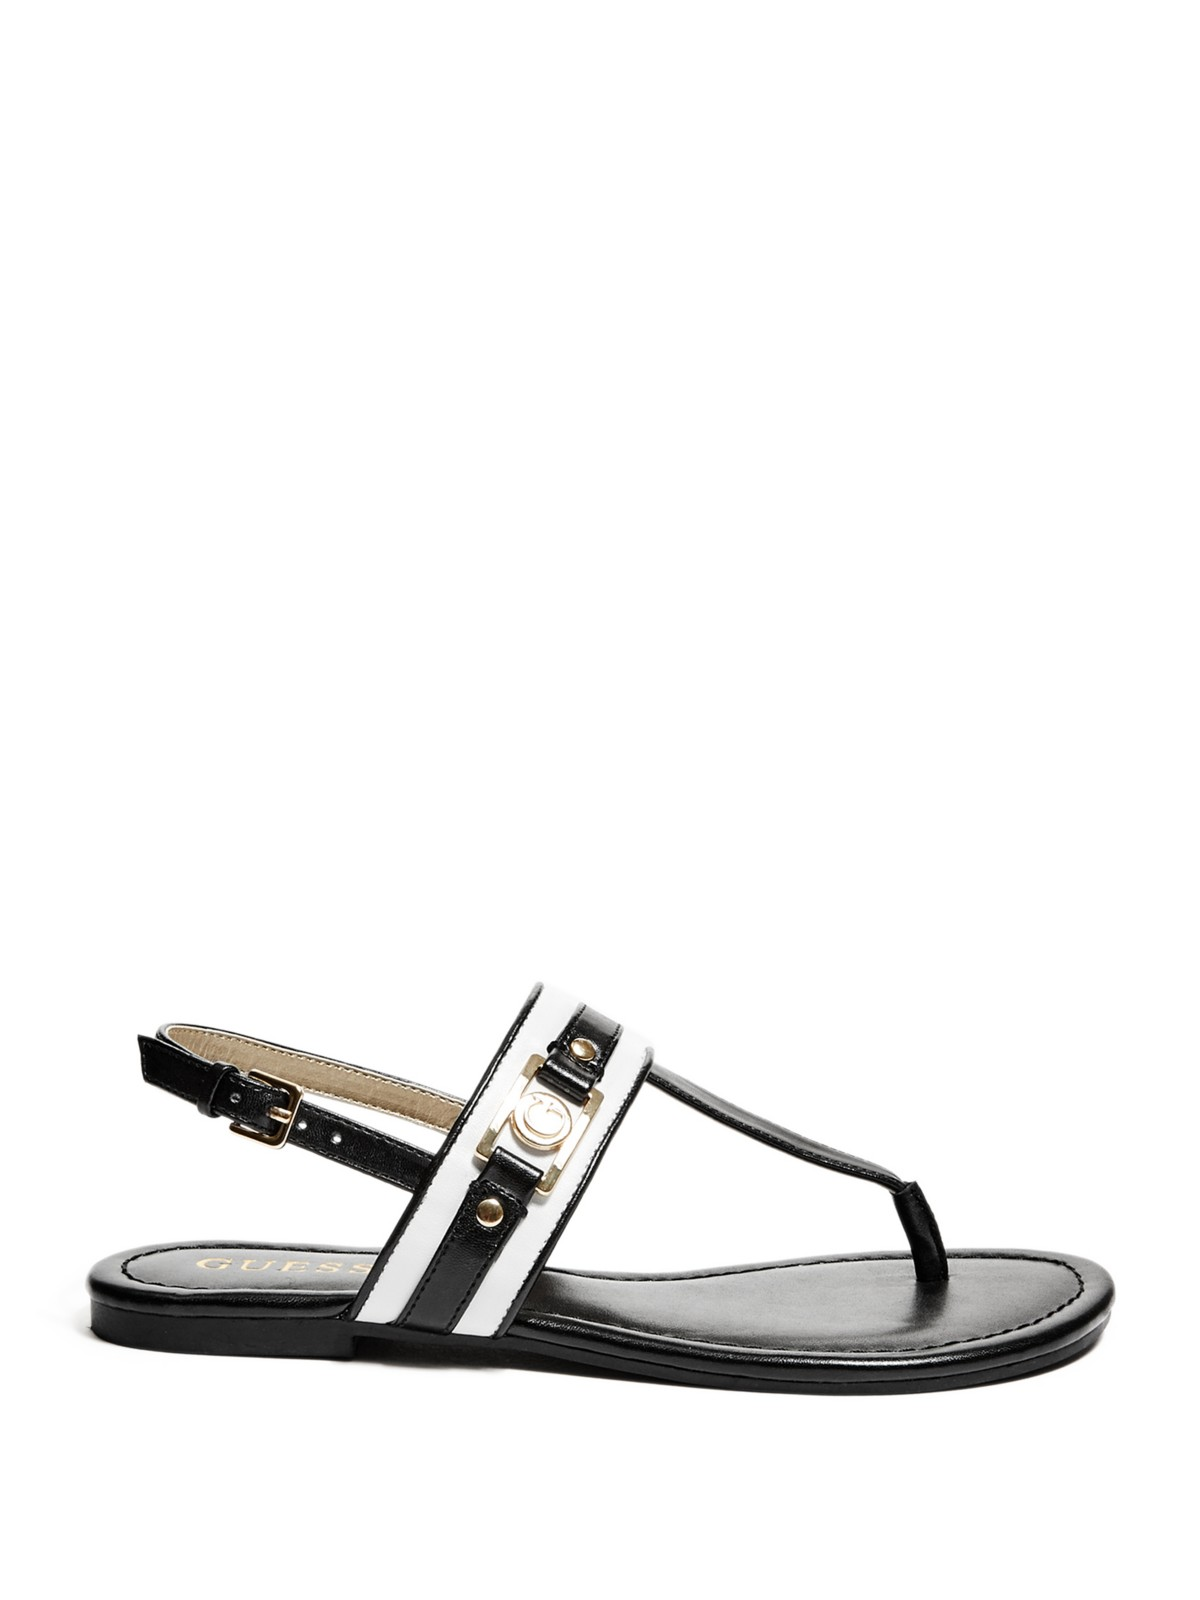 Innovative  By Guess G By Guess Learn Womens Gray Gladiator Sandals Shoes Sandals